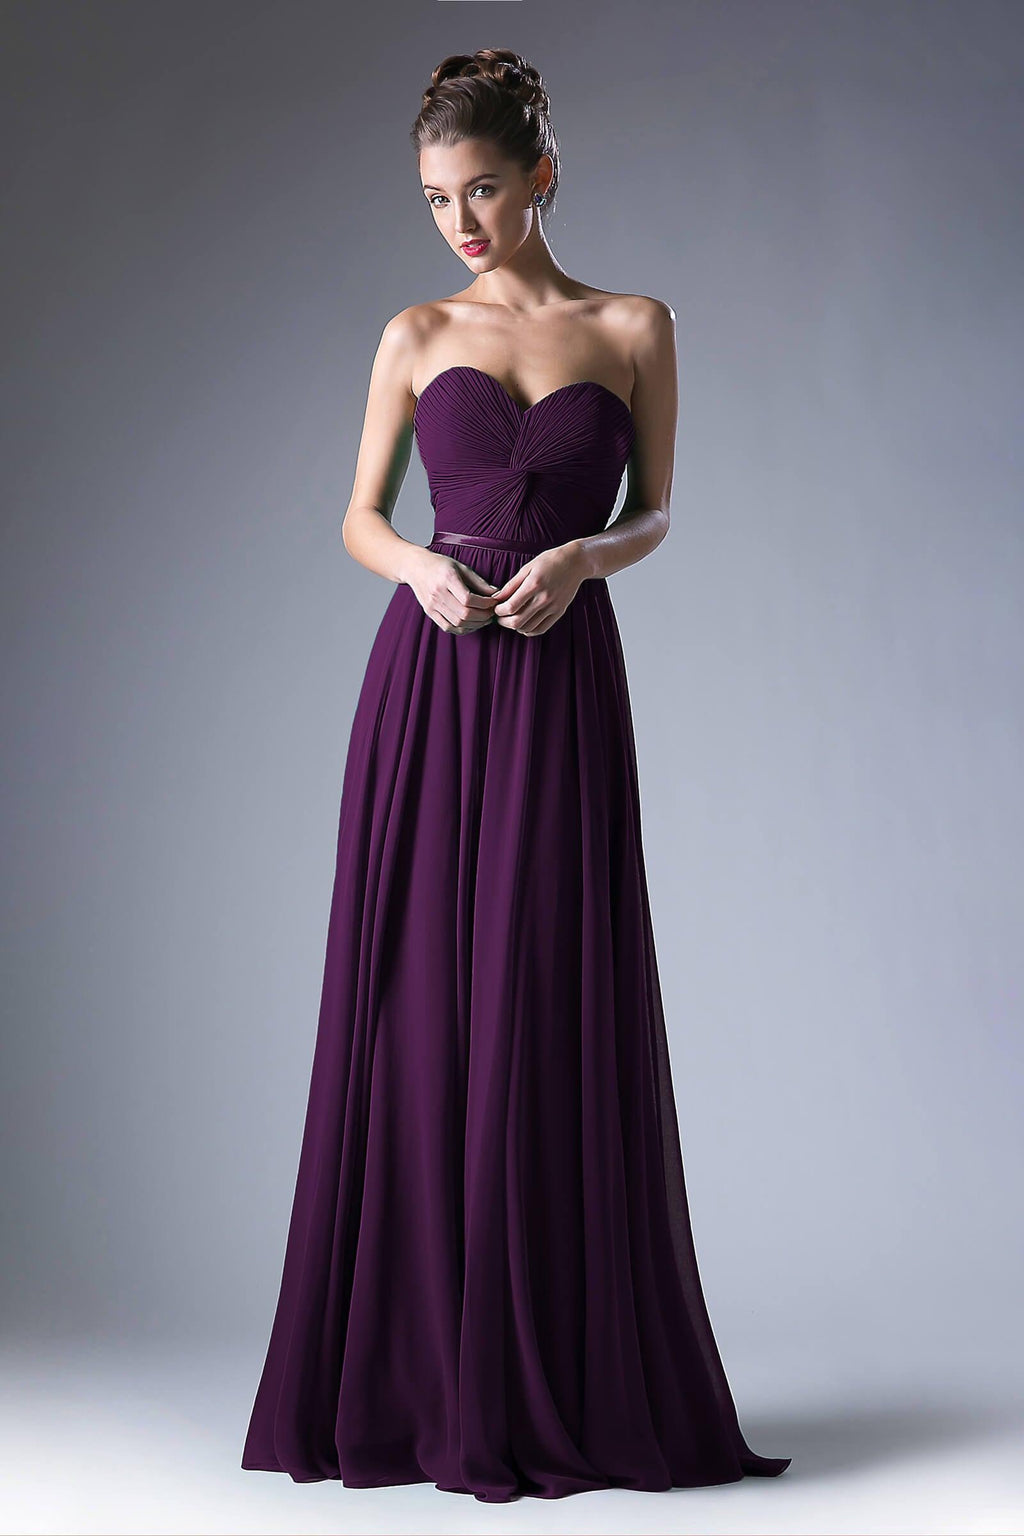 Strapless Chiffon Empire Waist Prom Dress - The Dress Outlet Eggplant Cinderella Divine